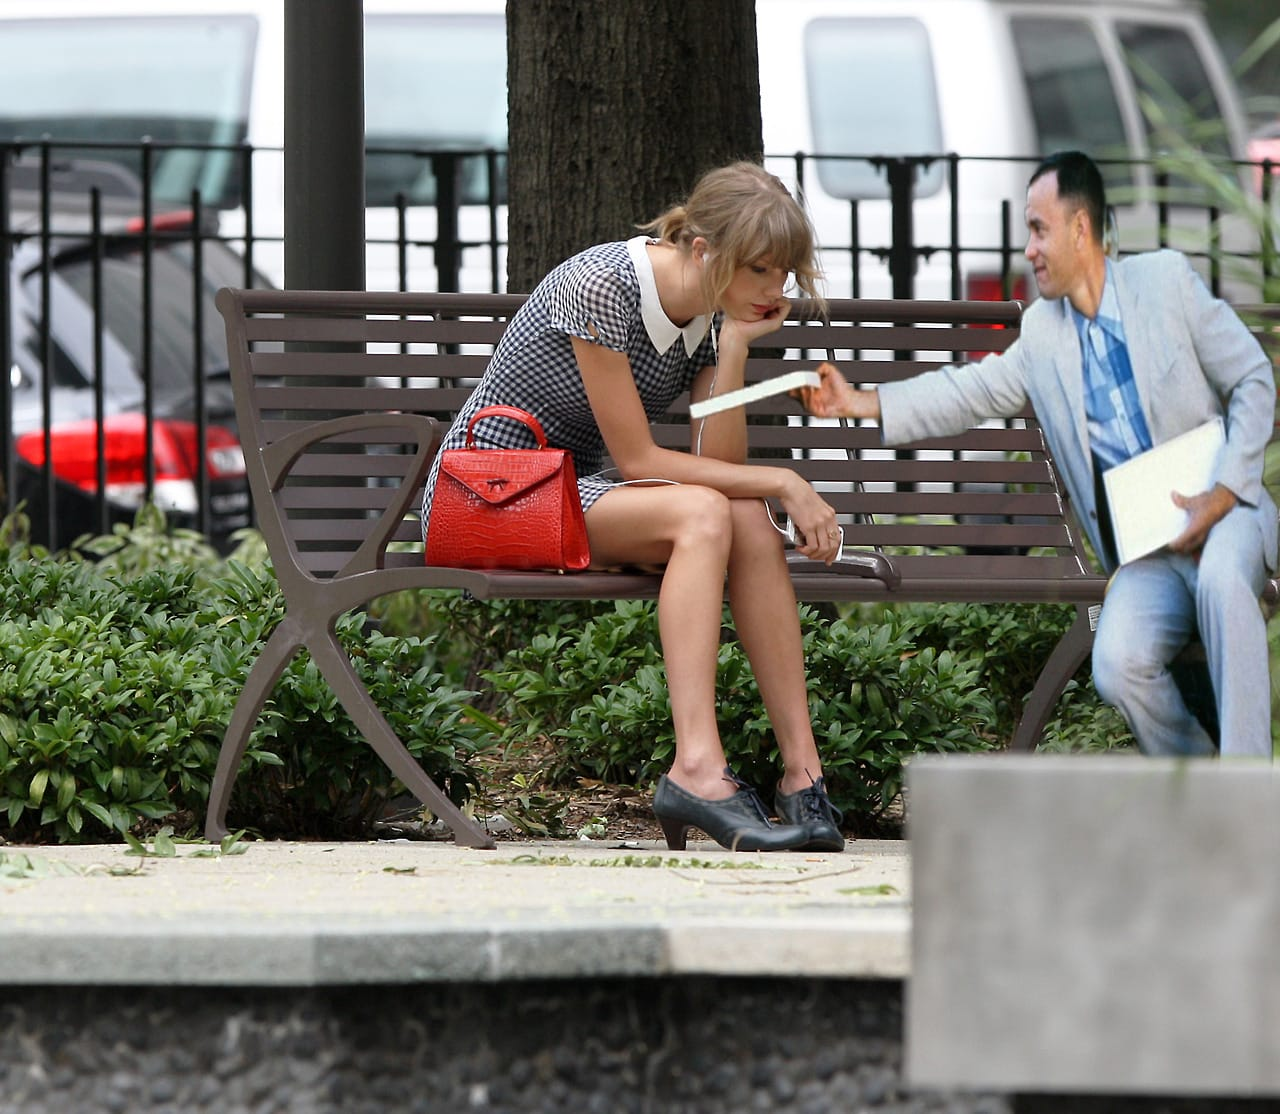 Sad Taylor and Mr. Gump